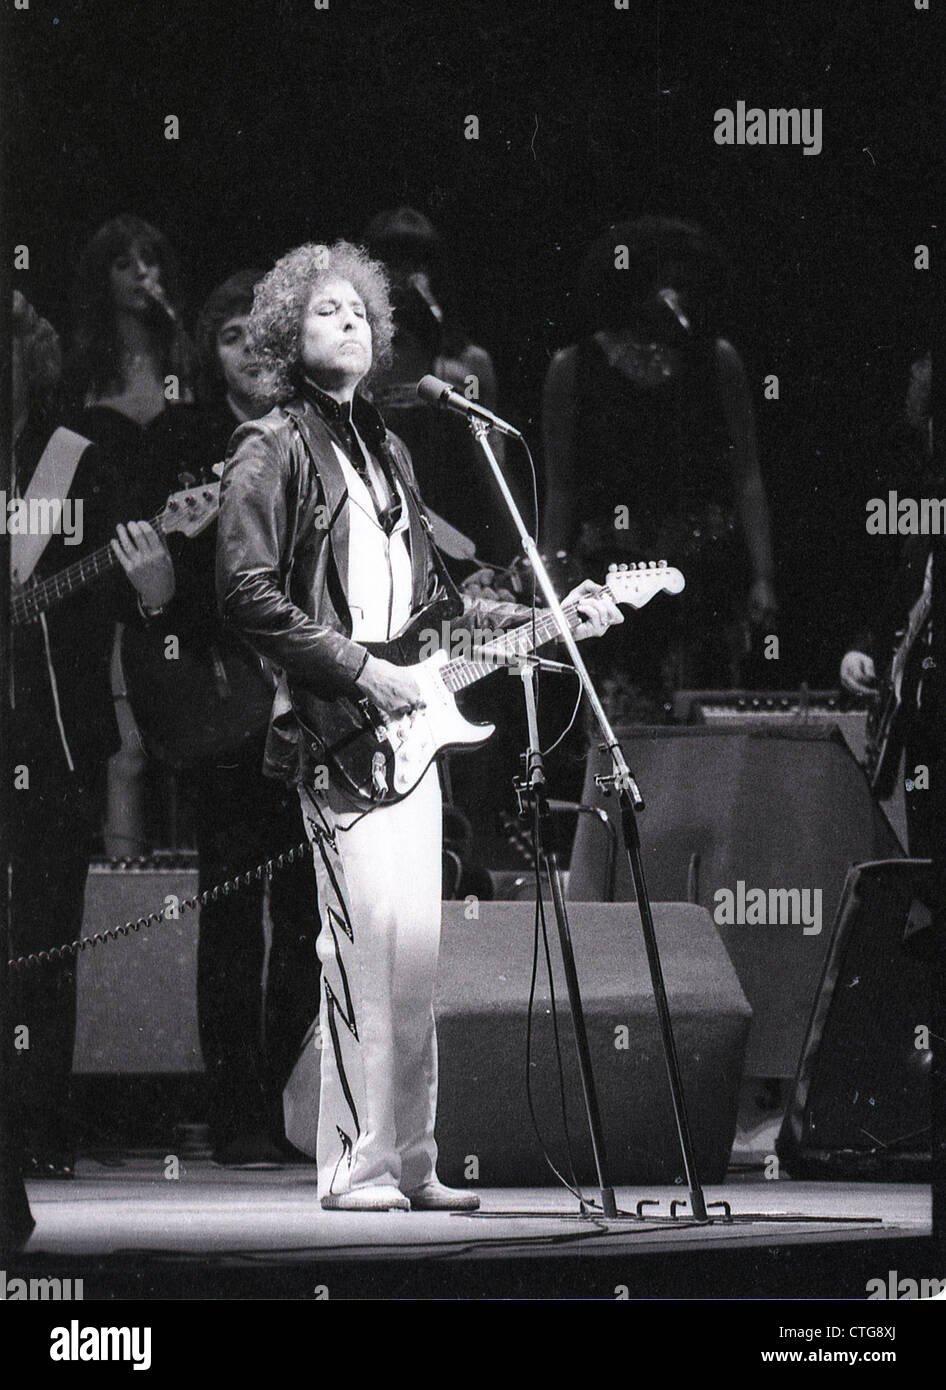 009279 - Bob Dylan in concert at Earls Court, London in June 1978 - Stock Image